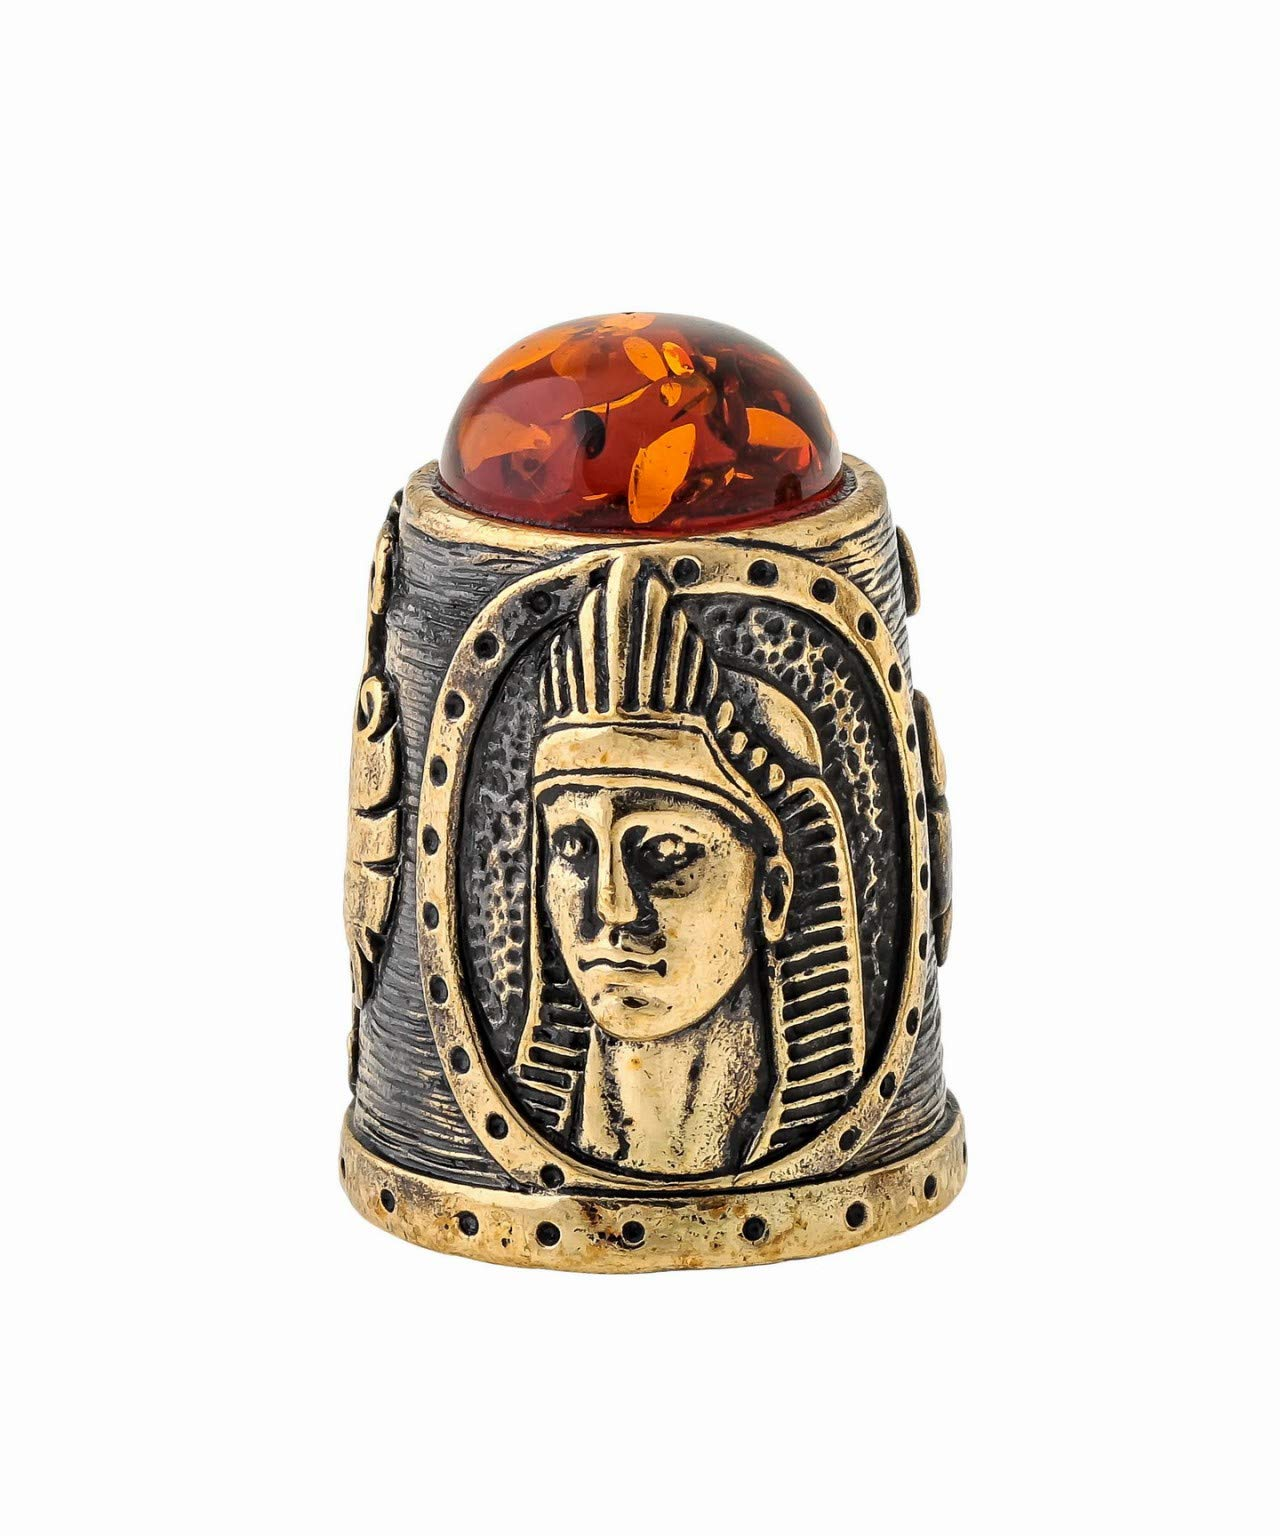 Amber and Brass Collectible Thimble (Egyptian) Decorative Souvenir Thimbles from Kaliningrad, Russia. Packed in a Beautiful Siberian Birch Bark Gift Box(Random Selection) by Brass and Amber Art